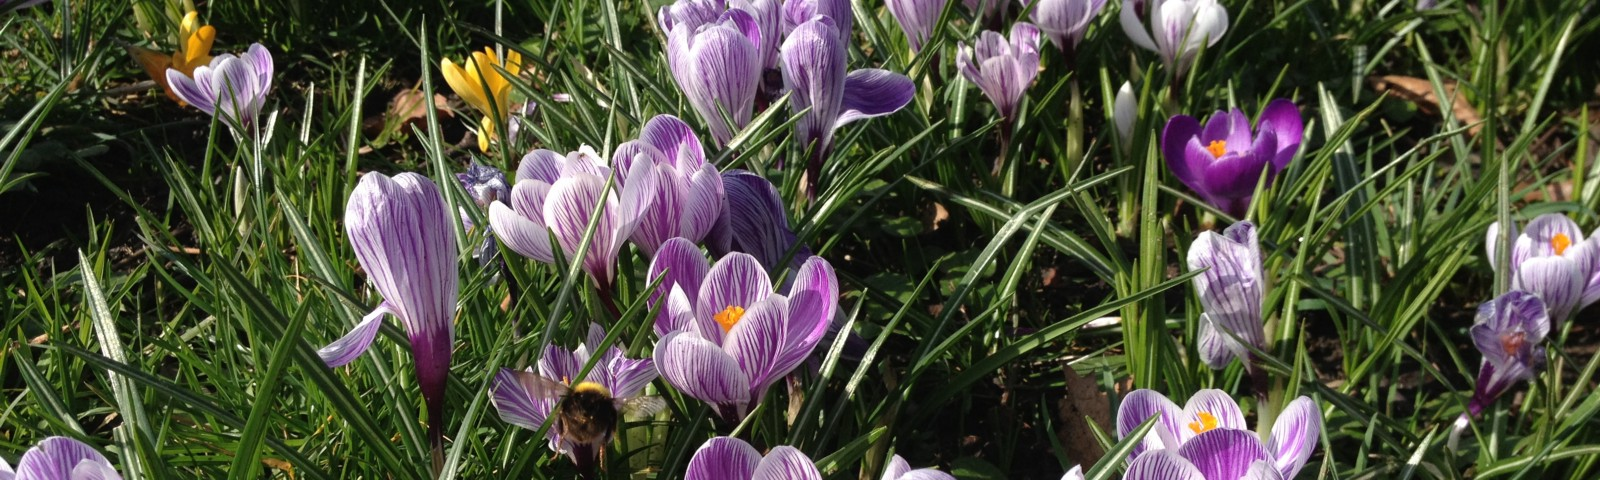 Close up shot of crocuses growing in green grass with a bee flying amongst them